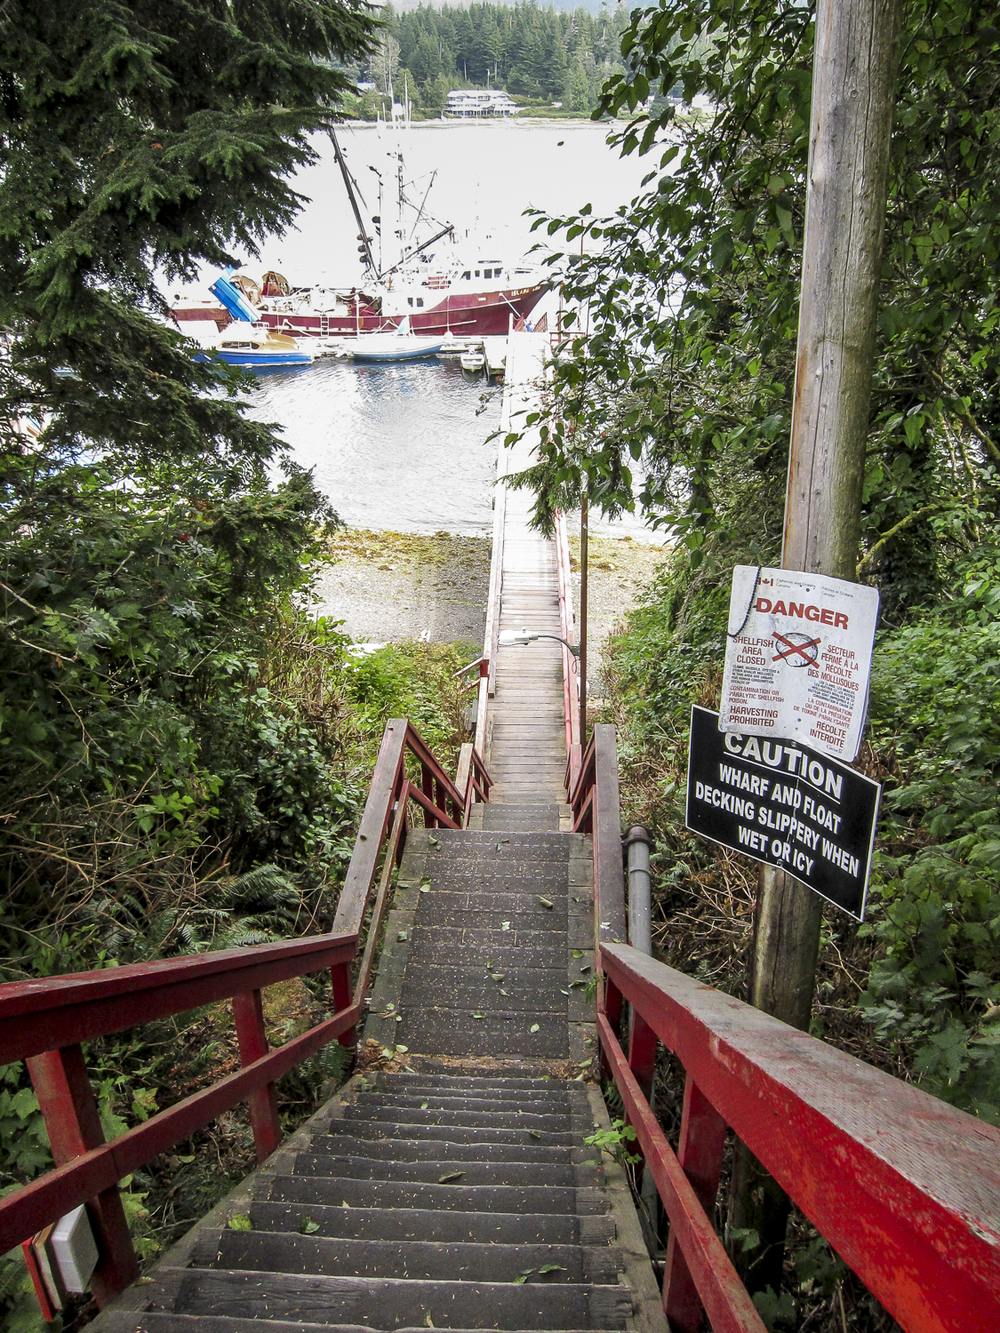 52 steps down to the working docks on the main inlet to Ucluelet